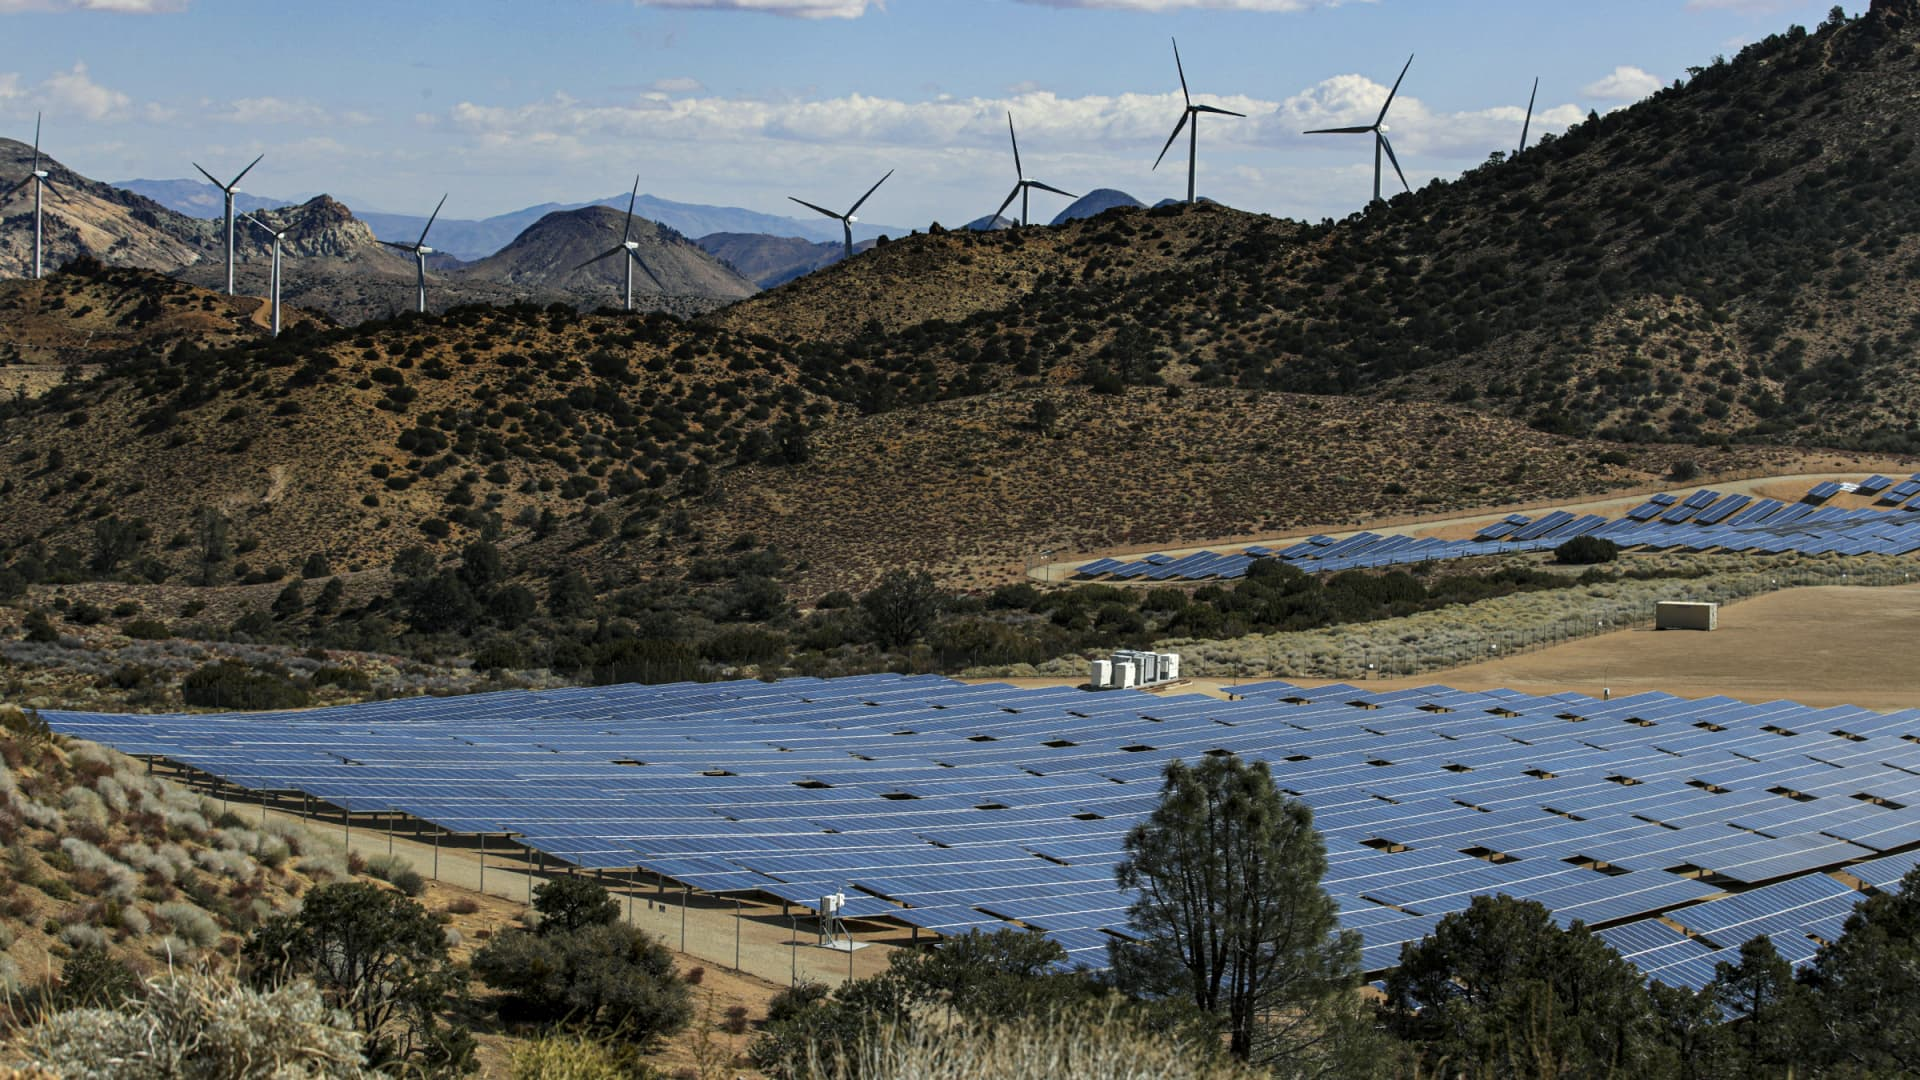 Kern County, CA - March 23: LADWPs Pine Tree Wind Farm and Solar Power Plant in the Tehachapi Mountains Tehachapi Mountains on Tuesday, March 23, 2021 in Kern County, CA.(Irfan Khan / Los Angeles Times via Getty Images)